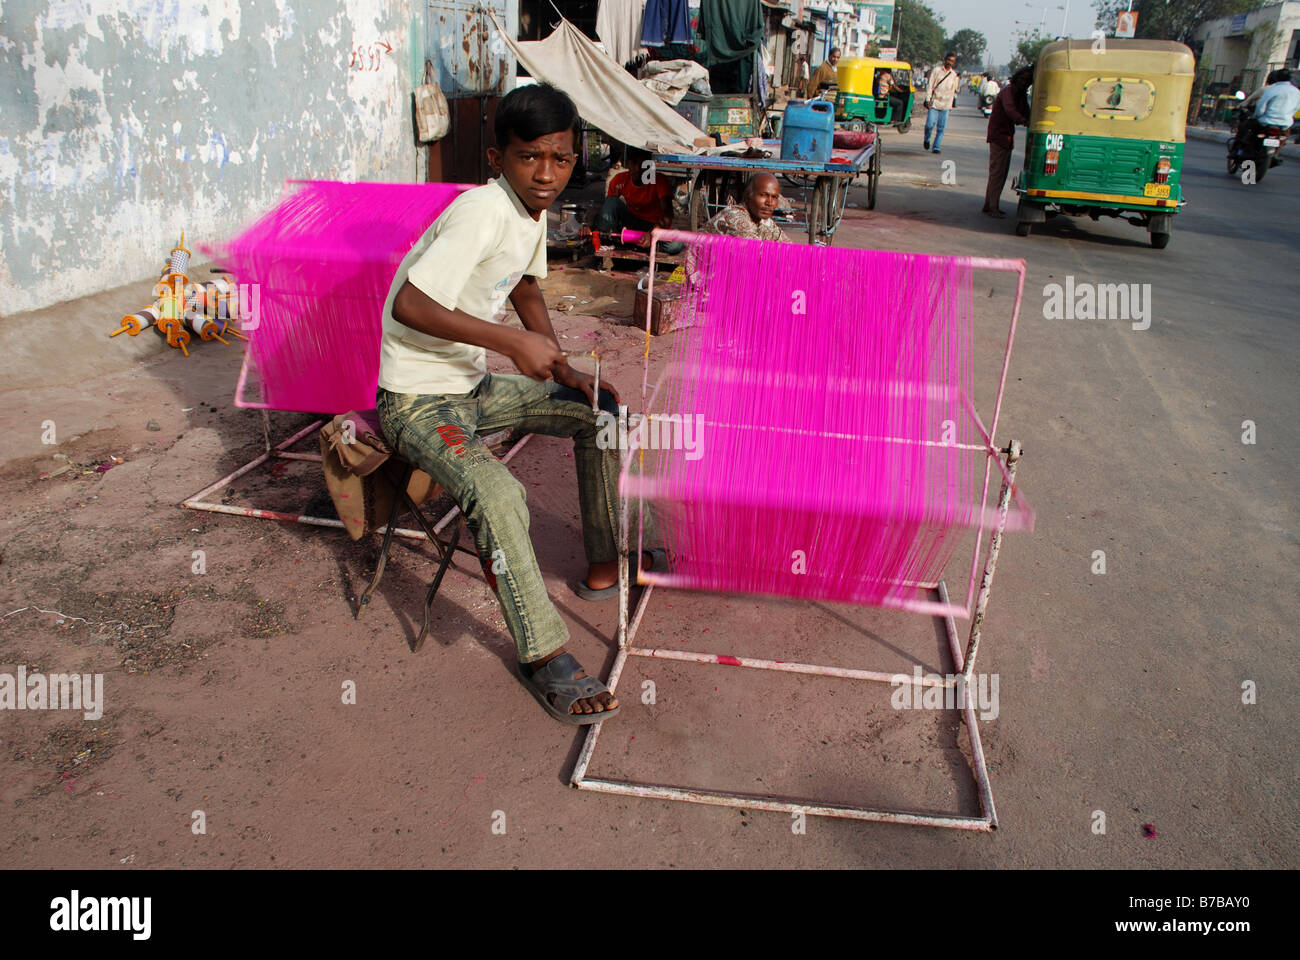 Boy dyeing thread in the street in preparation for the Kite Festival, Ahmedabad, India. - Stock Image